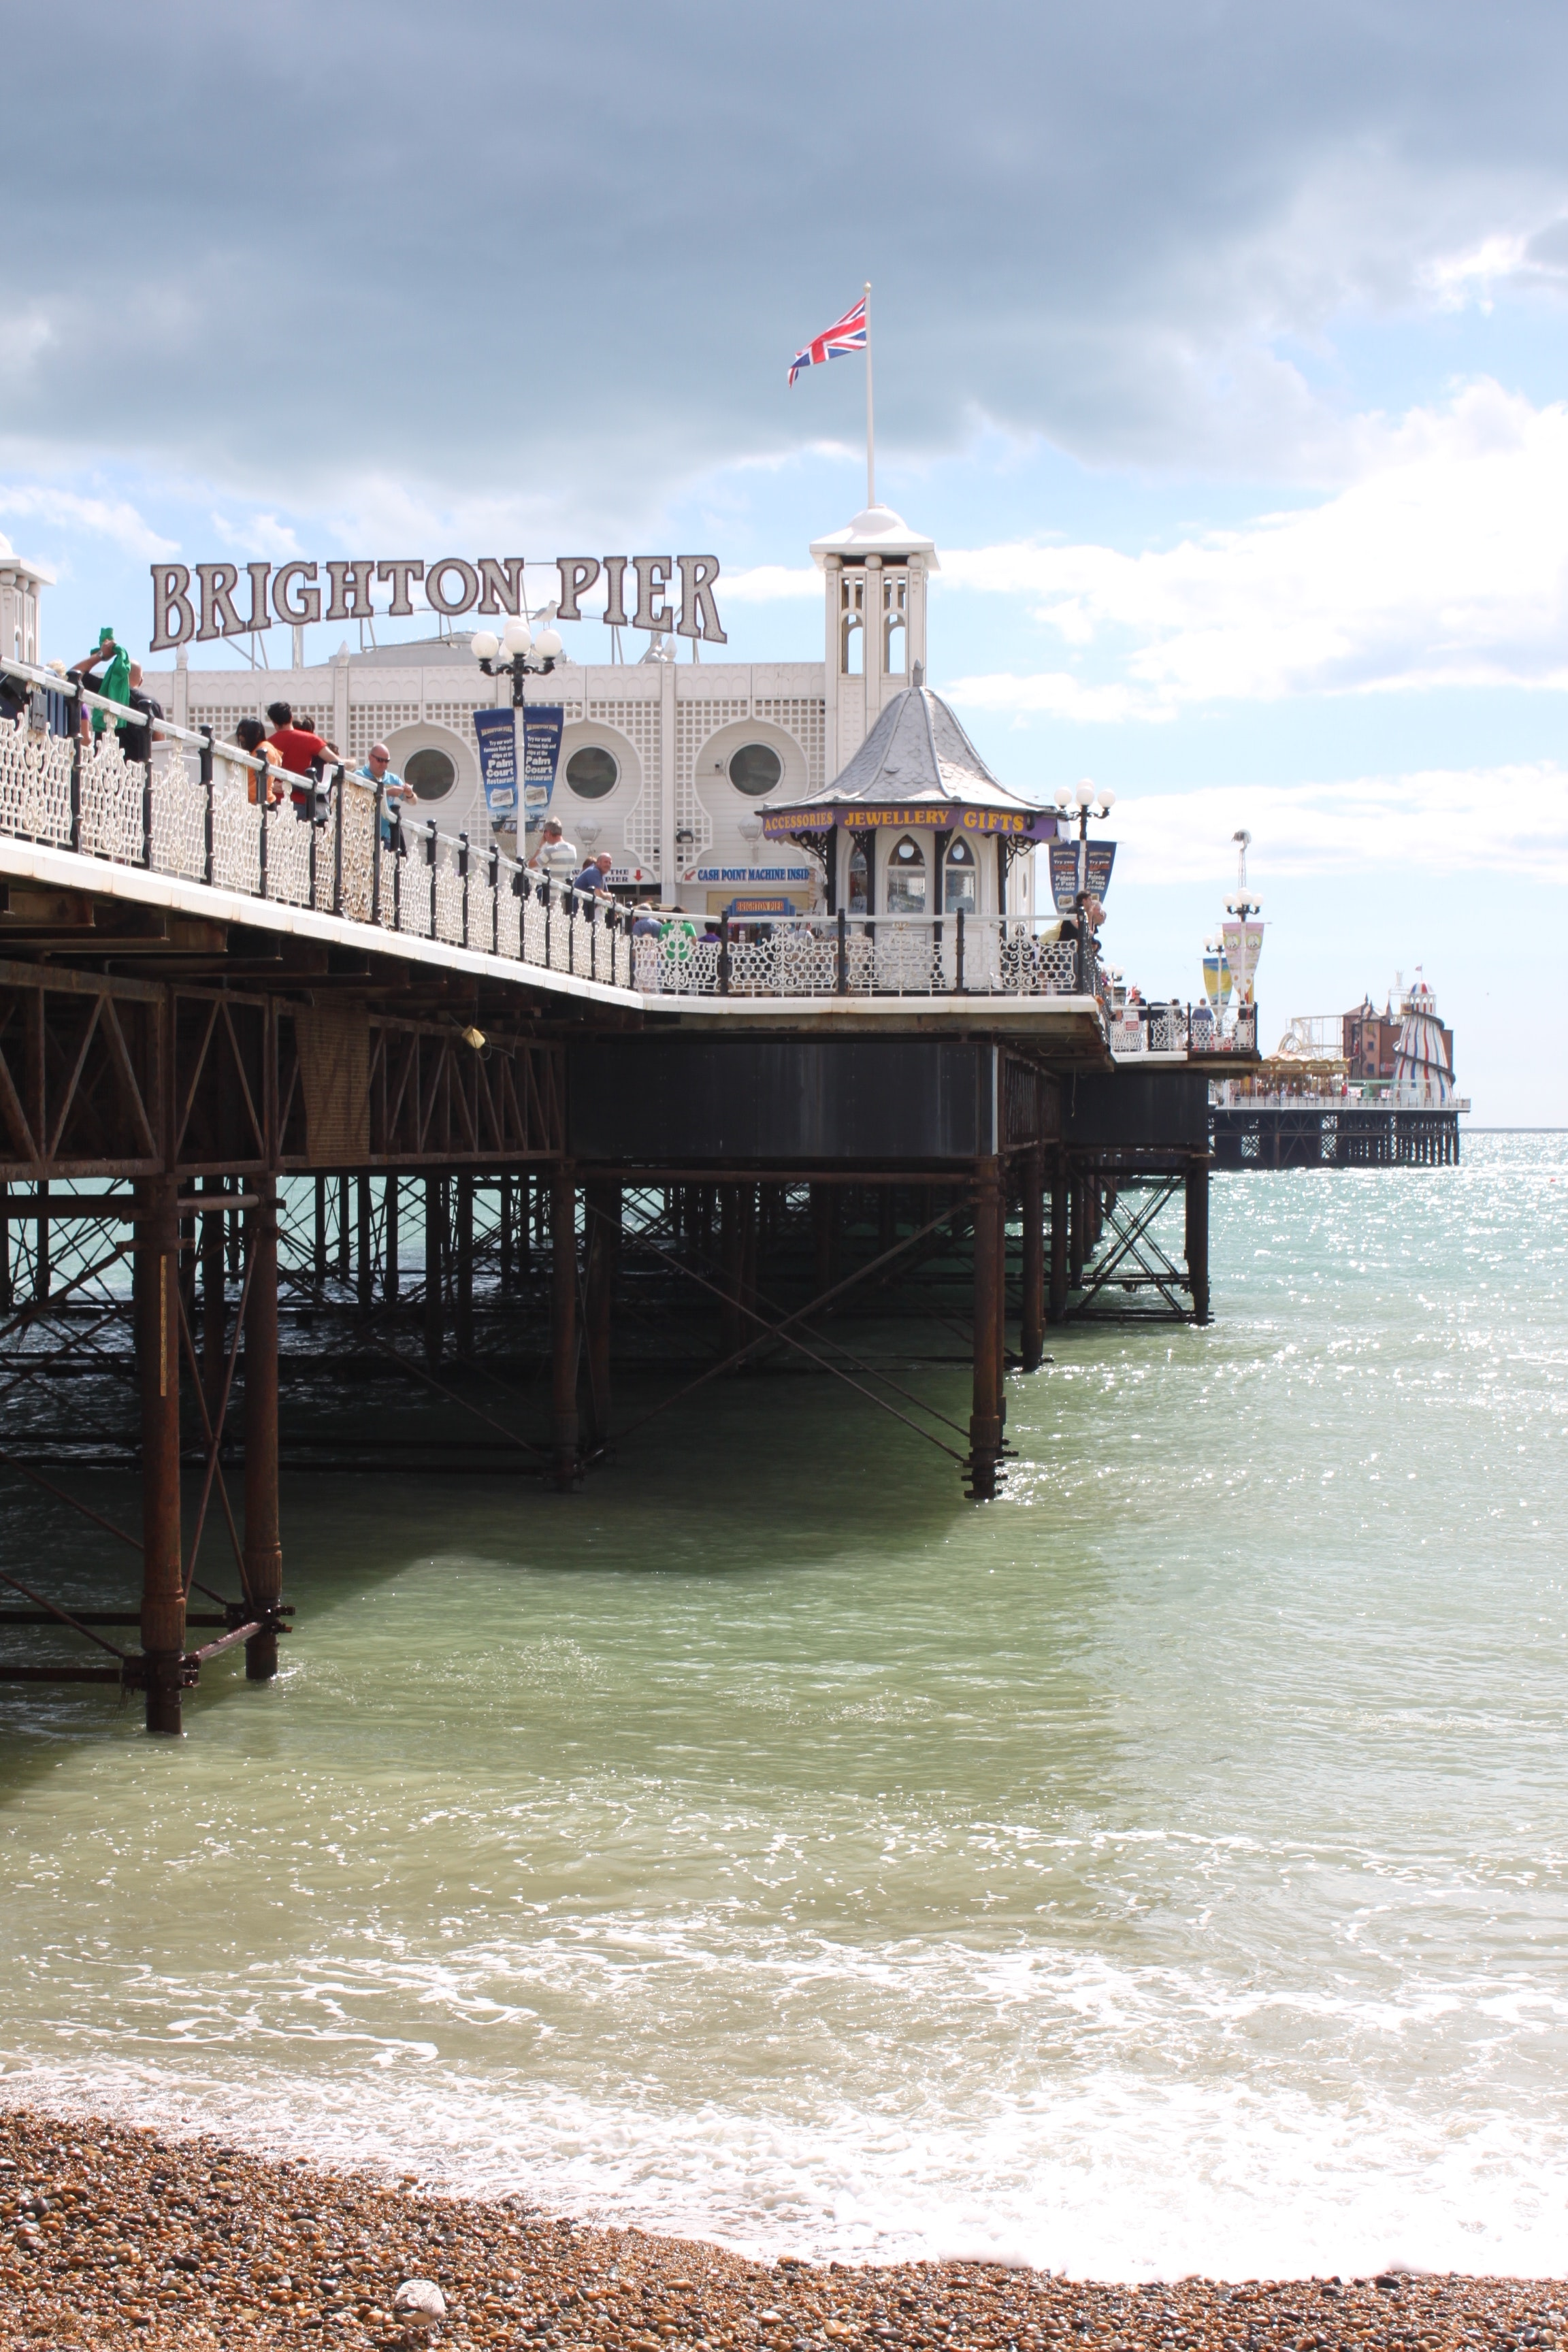 blue-brighton-marine-palace-and-pier-flag-89425.jpg